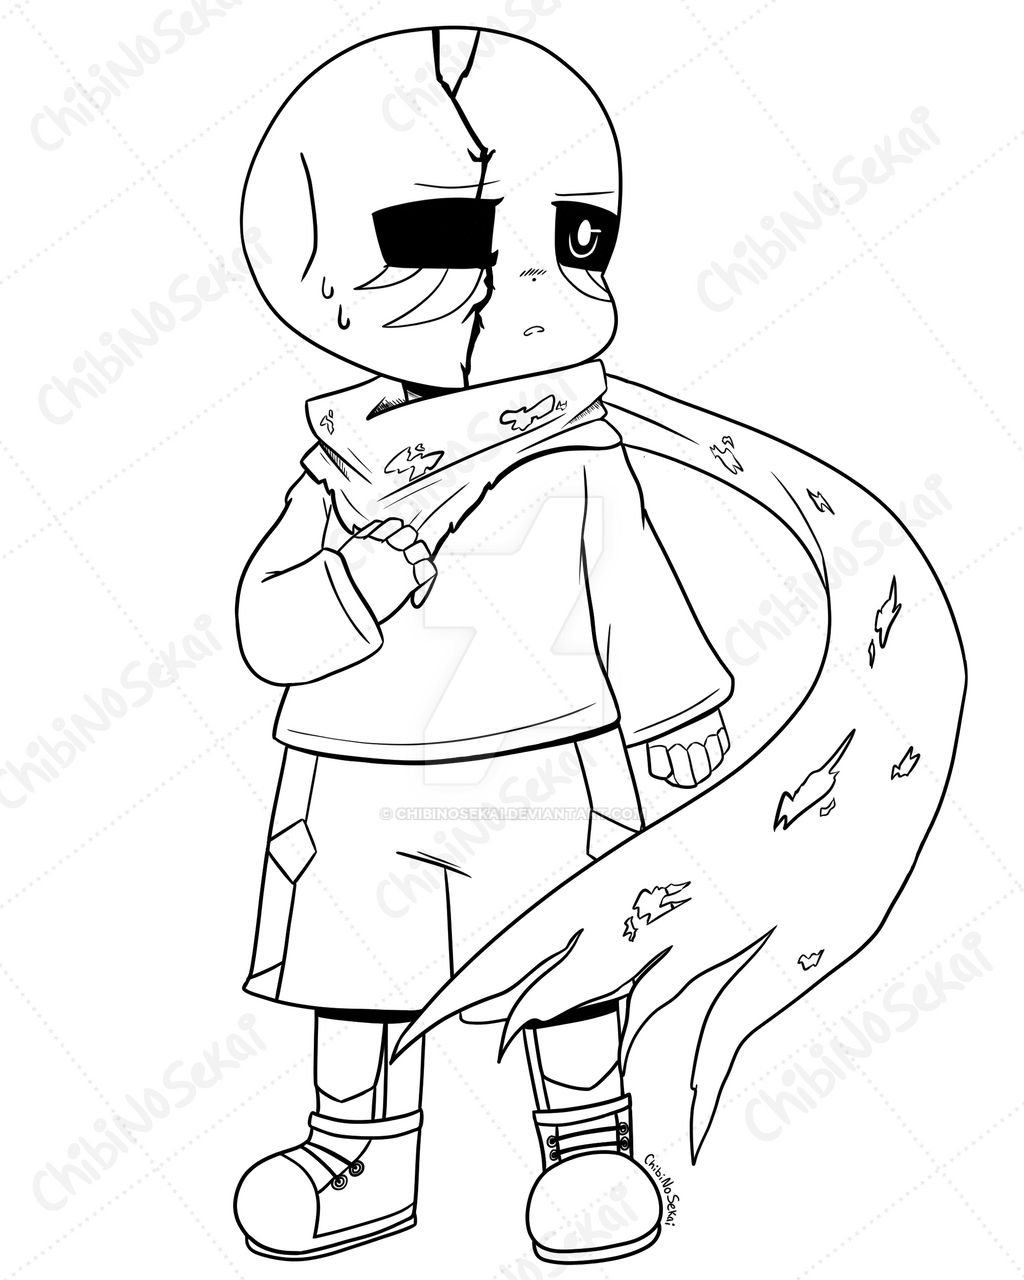 C Krypton Sans Coloring Page By Chibinosekai On Deviantart